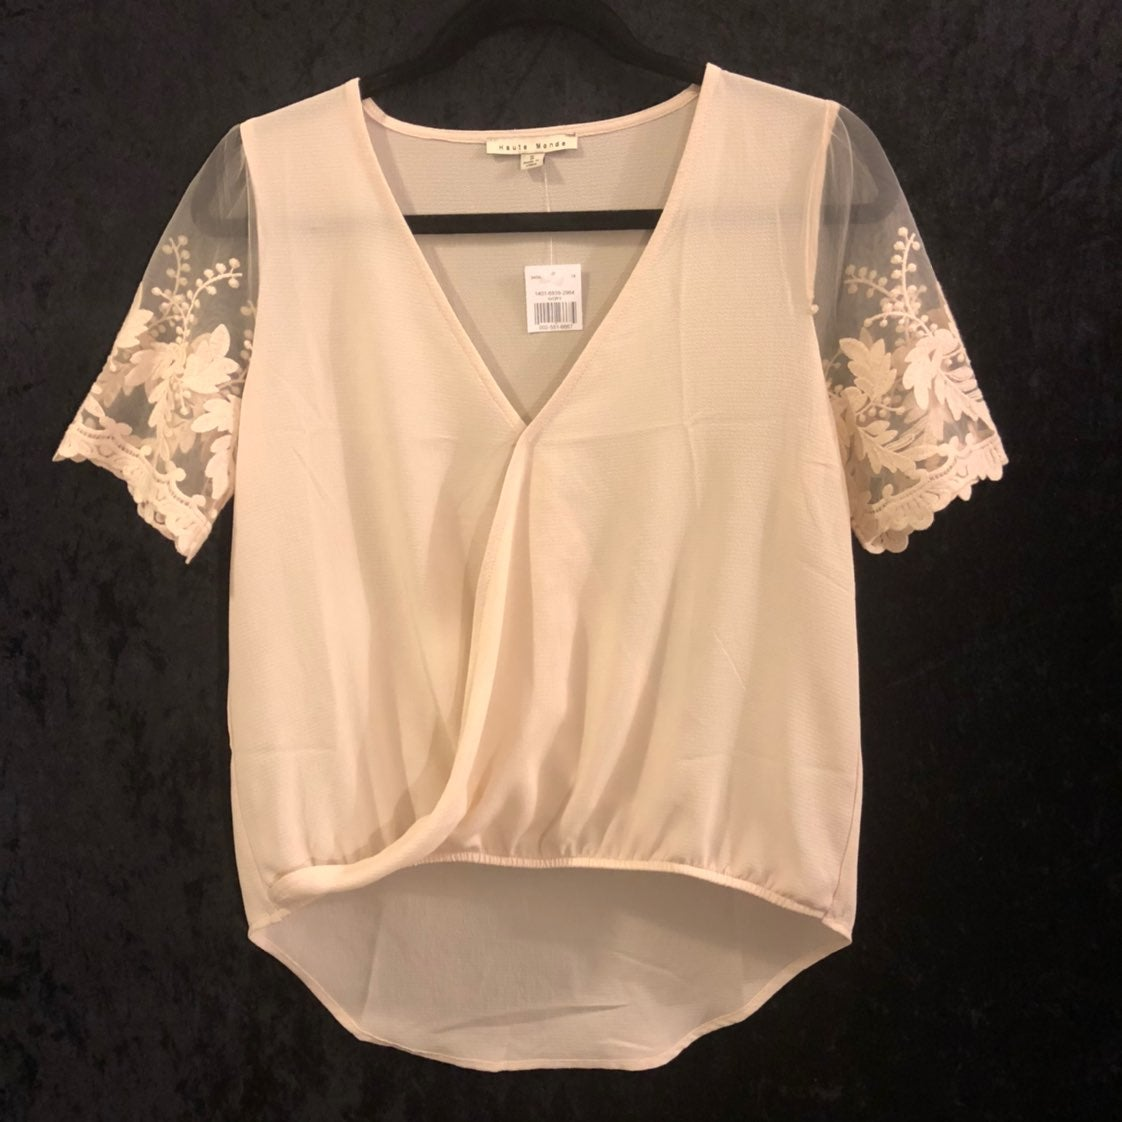 Cute lace top size small